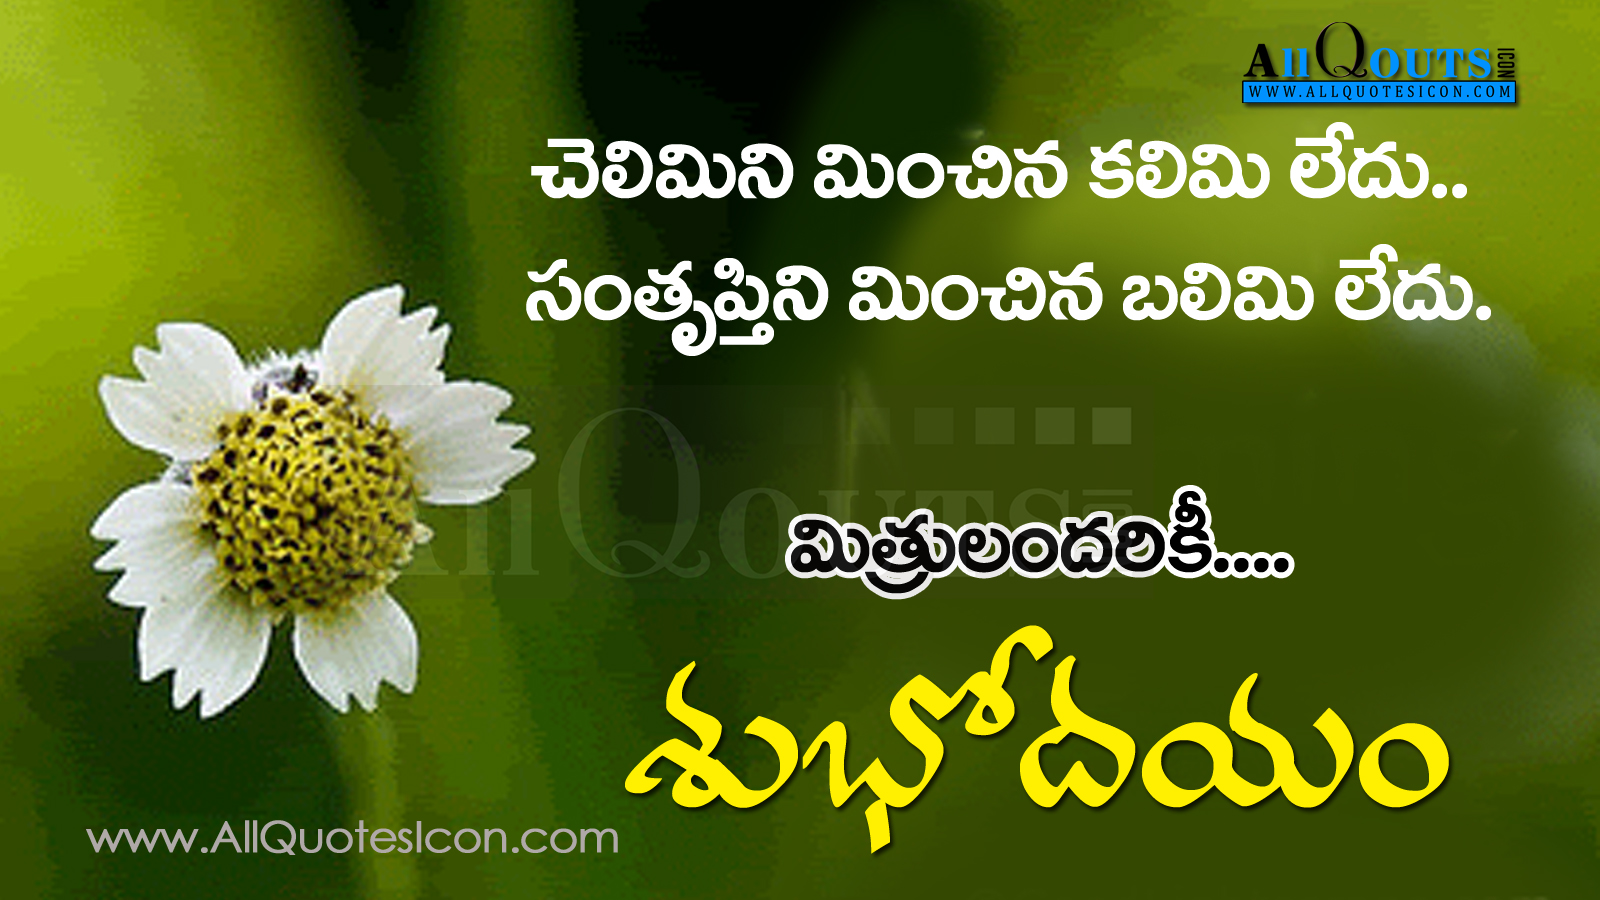 Inspirational Messages Telugu Inspirational Messages For Everyday Best Telugu Goodmorning